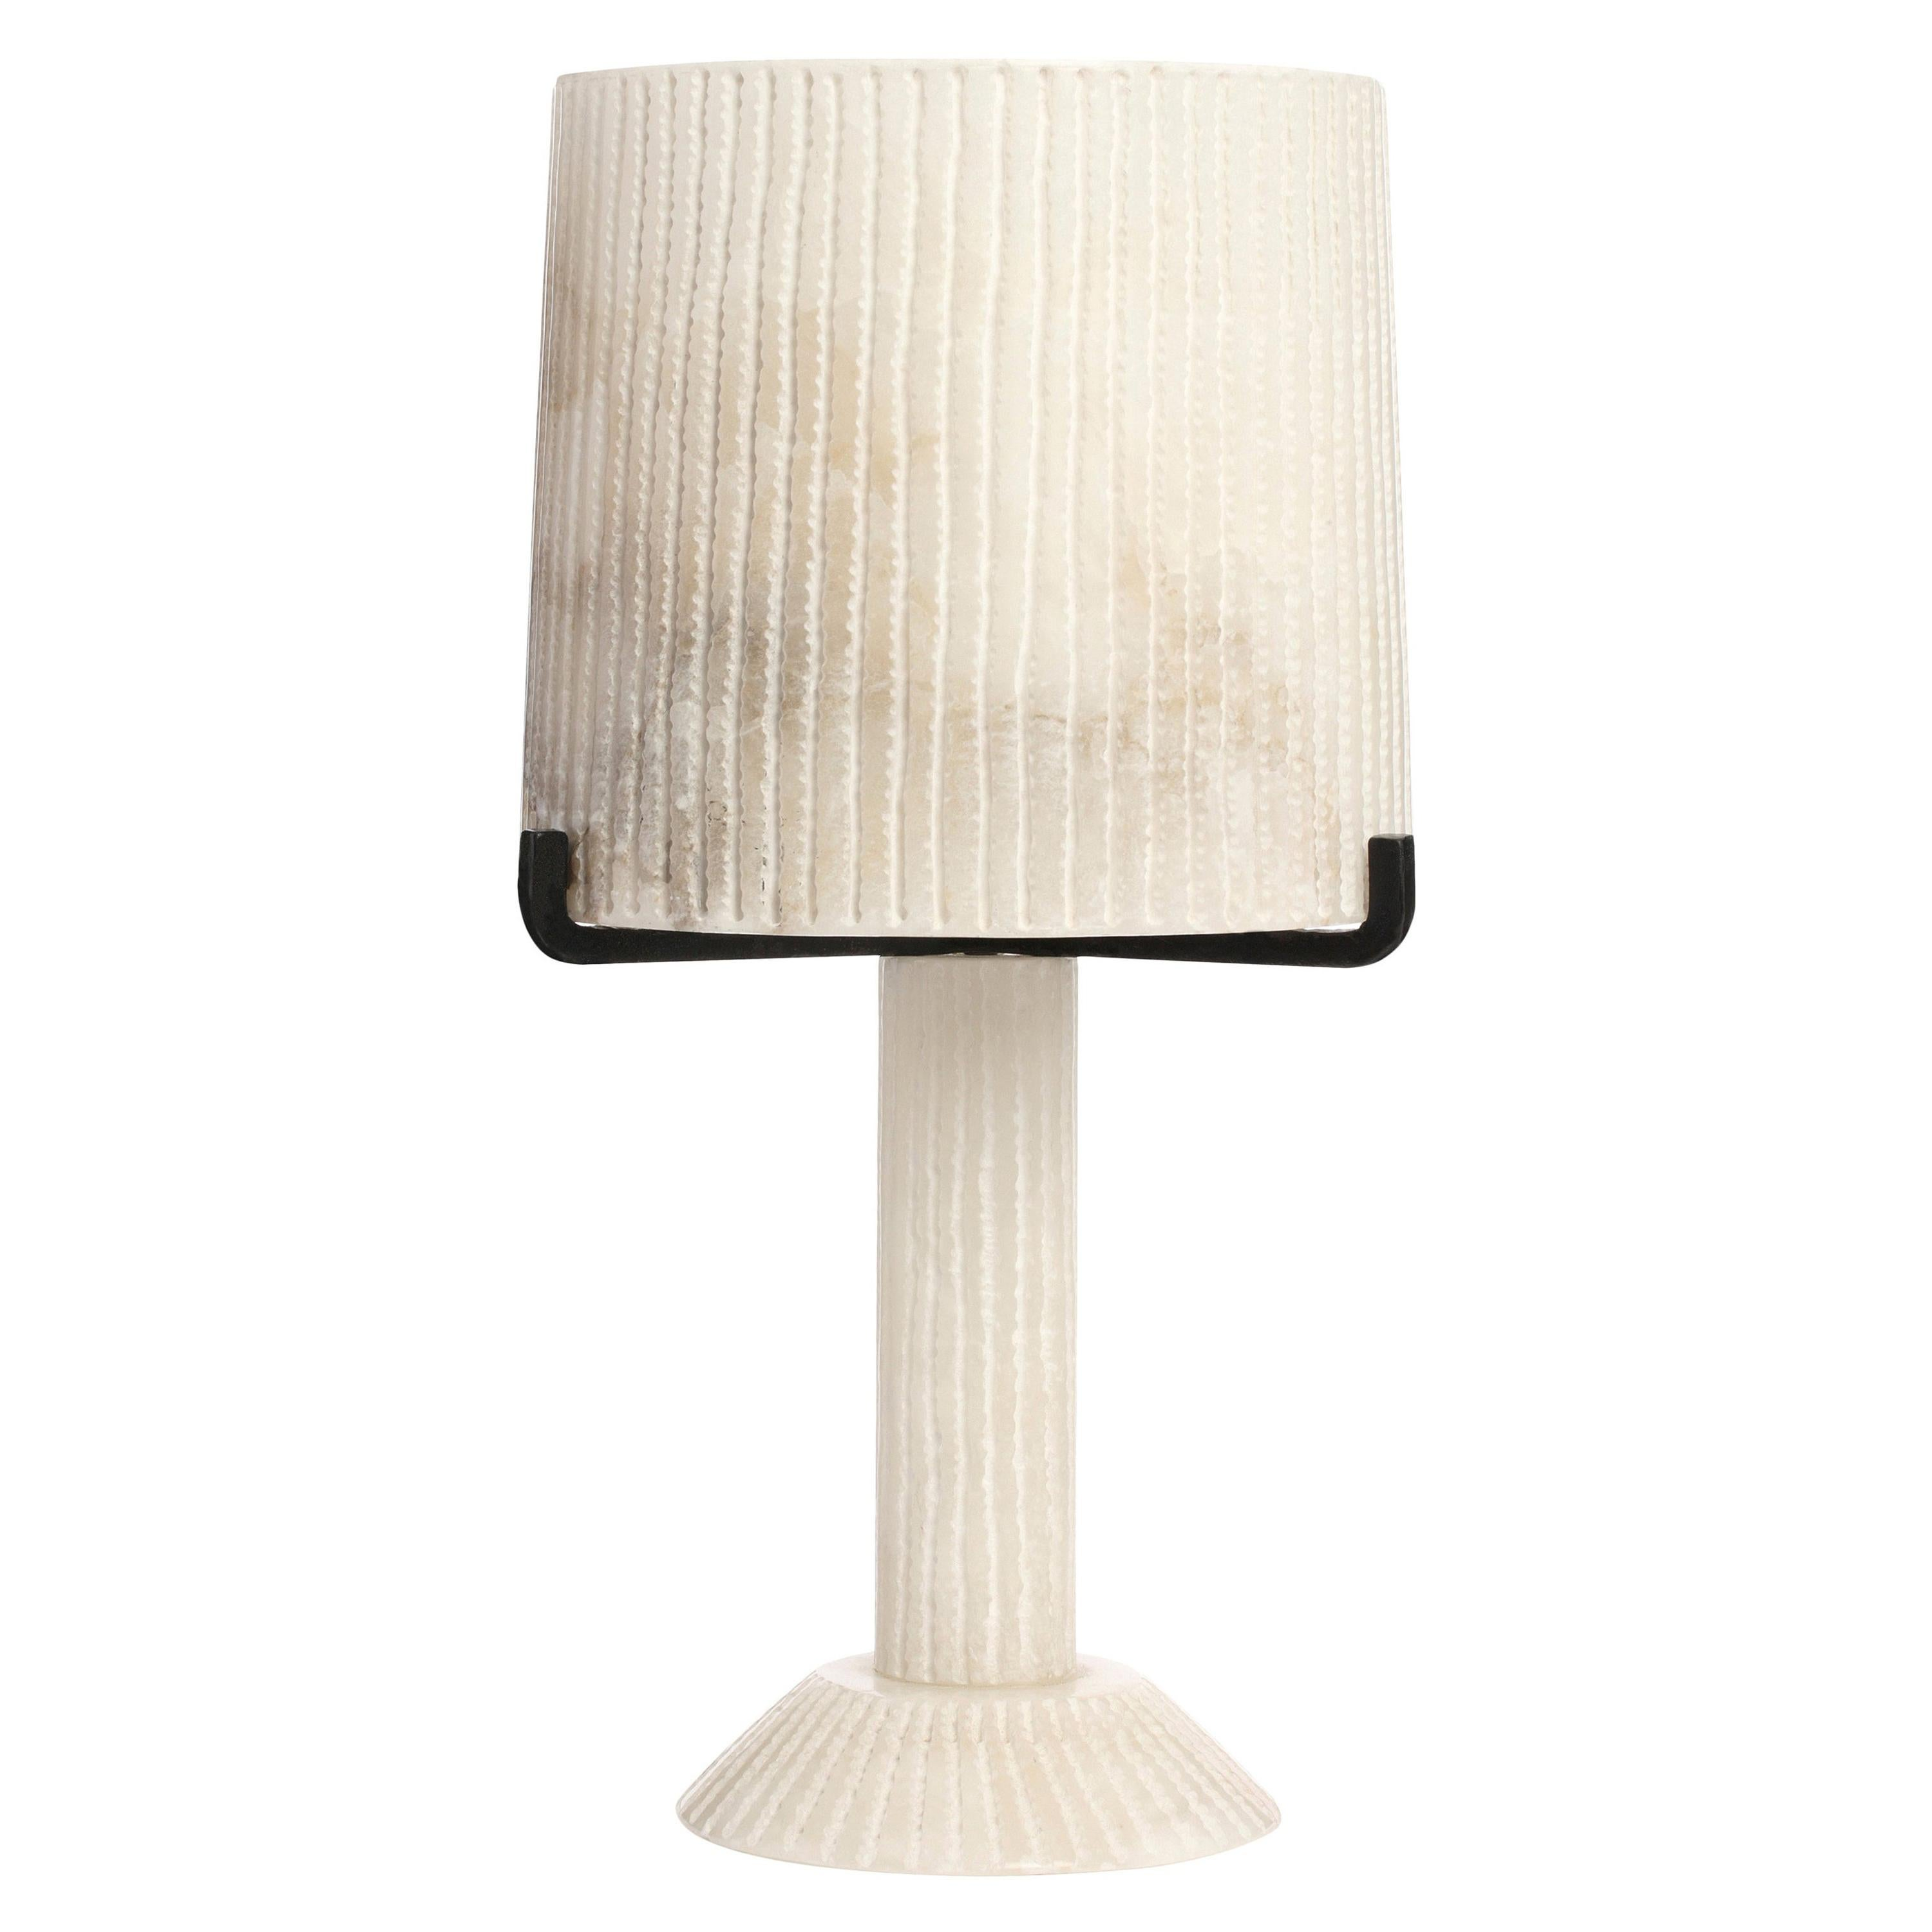 Alabaster Acropolis Table Lamp by CTO Lighting